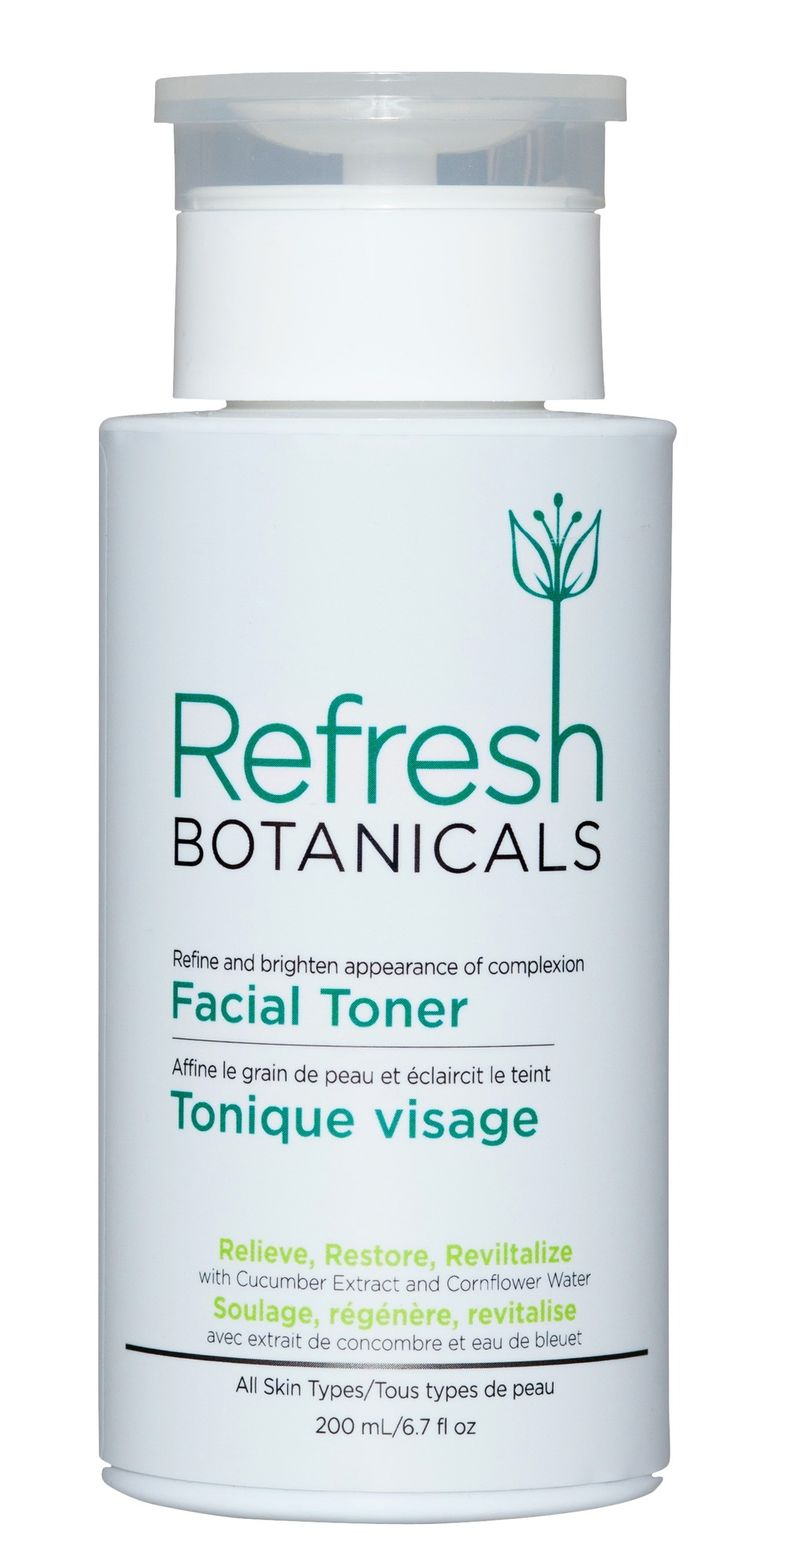 Gentle Botanical Skincare